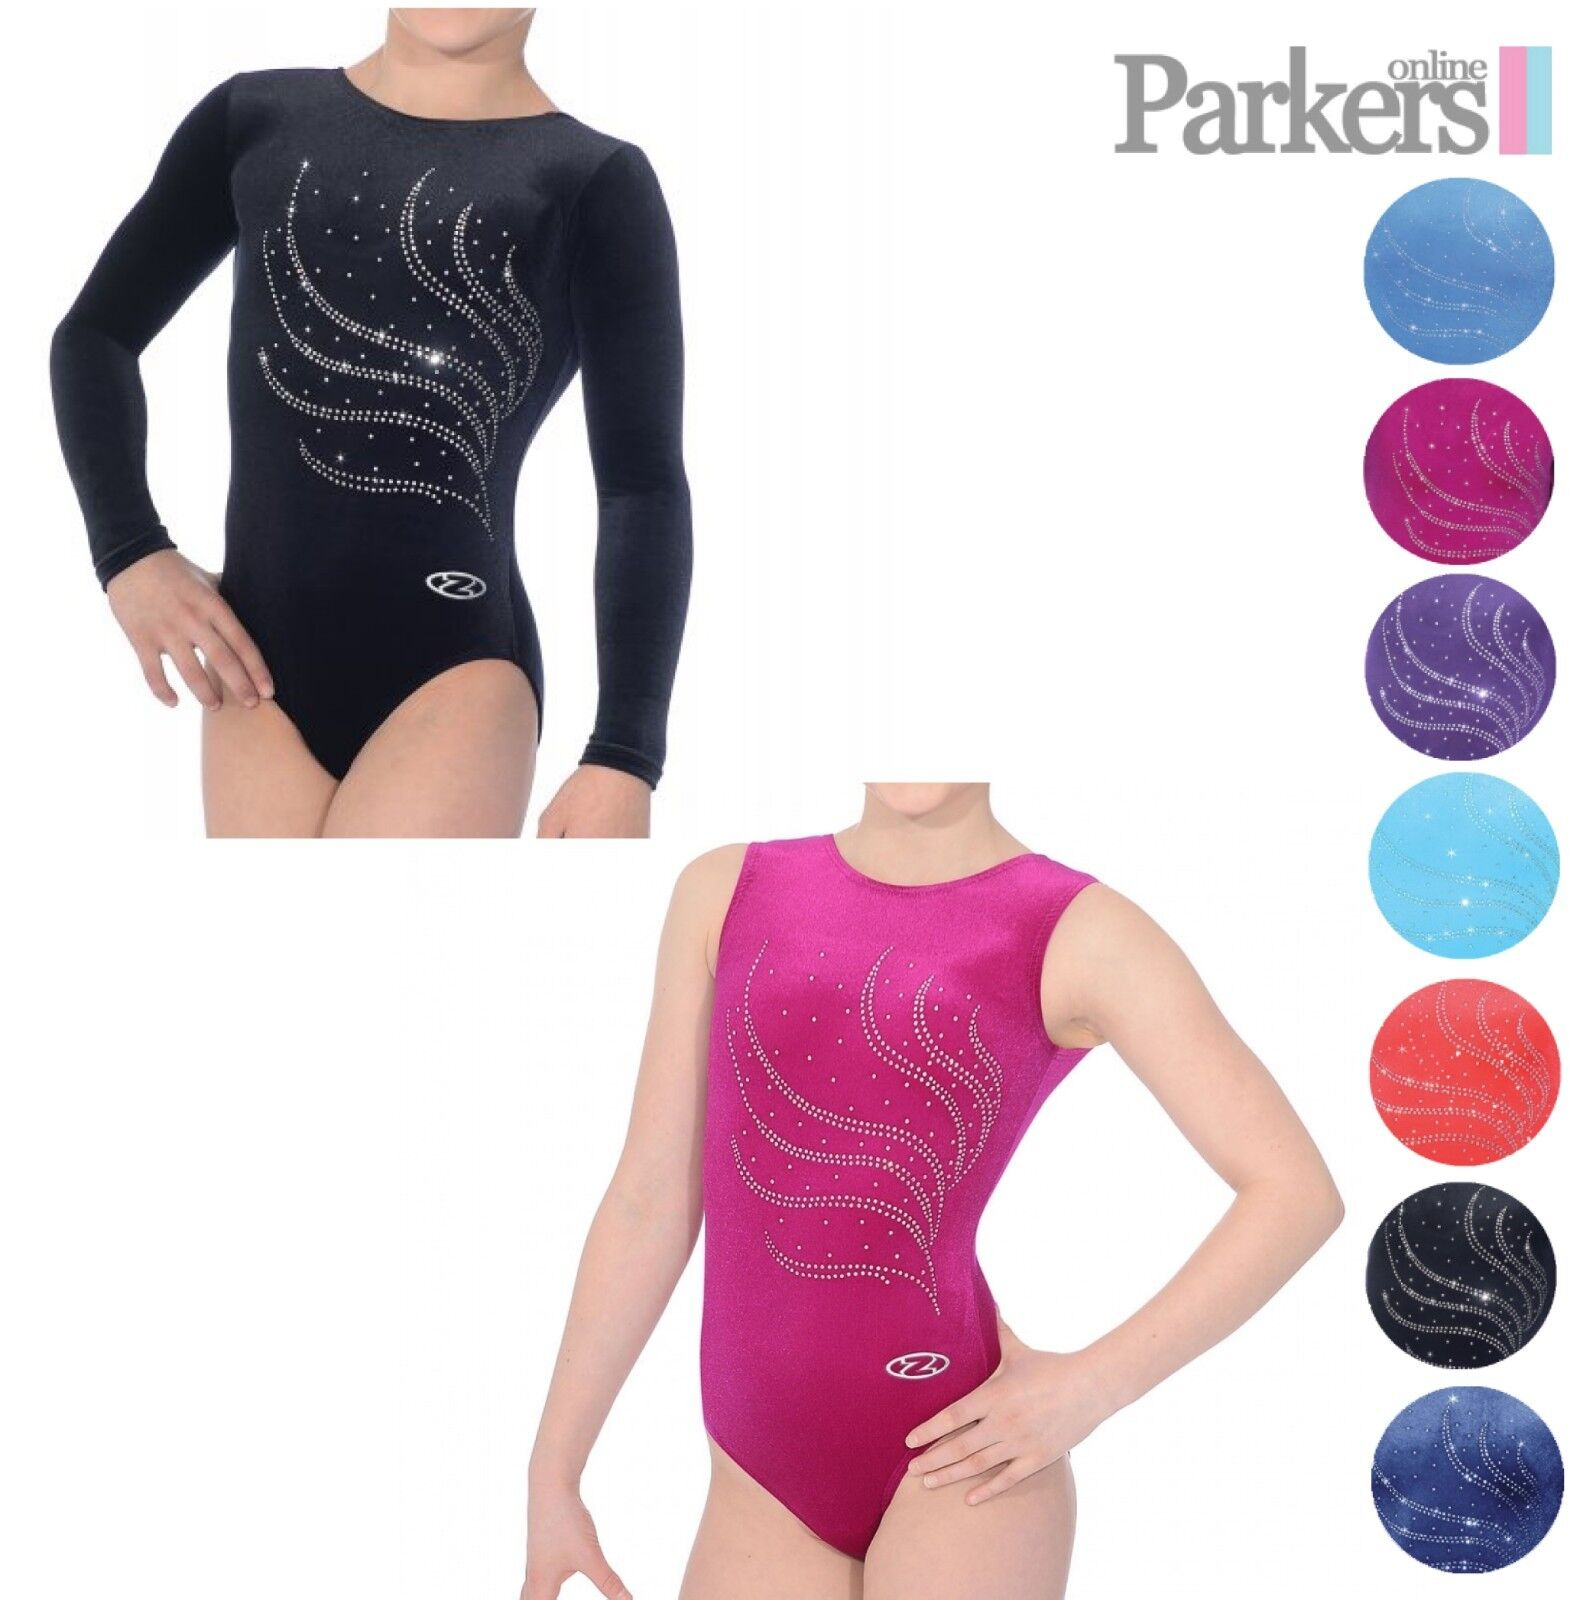 NEW GIRLS ZONE LONG SLEEVE SLEEVELESS TIARA LEOTARD DANCE GYMNASTICS SIZE 24-38